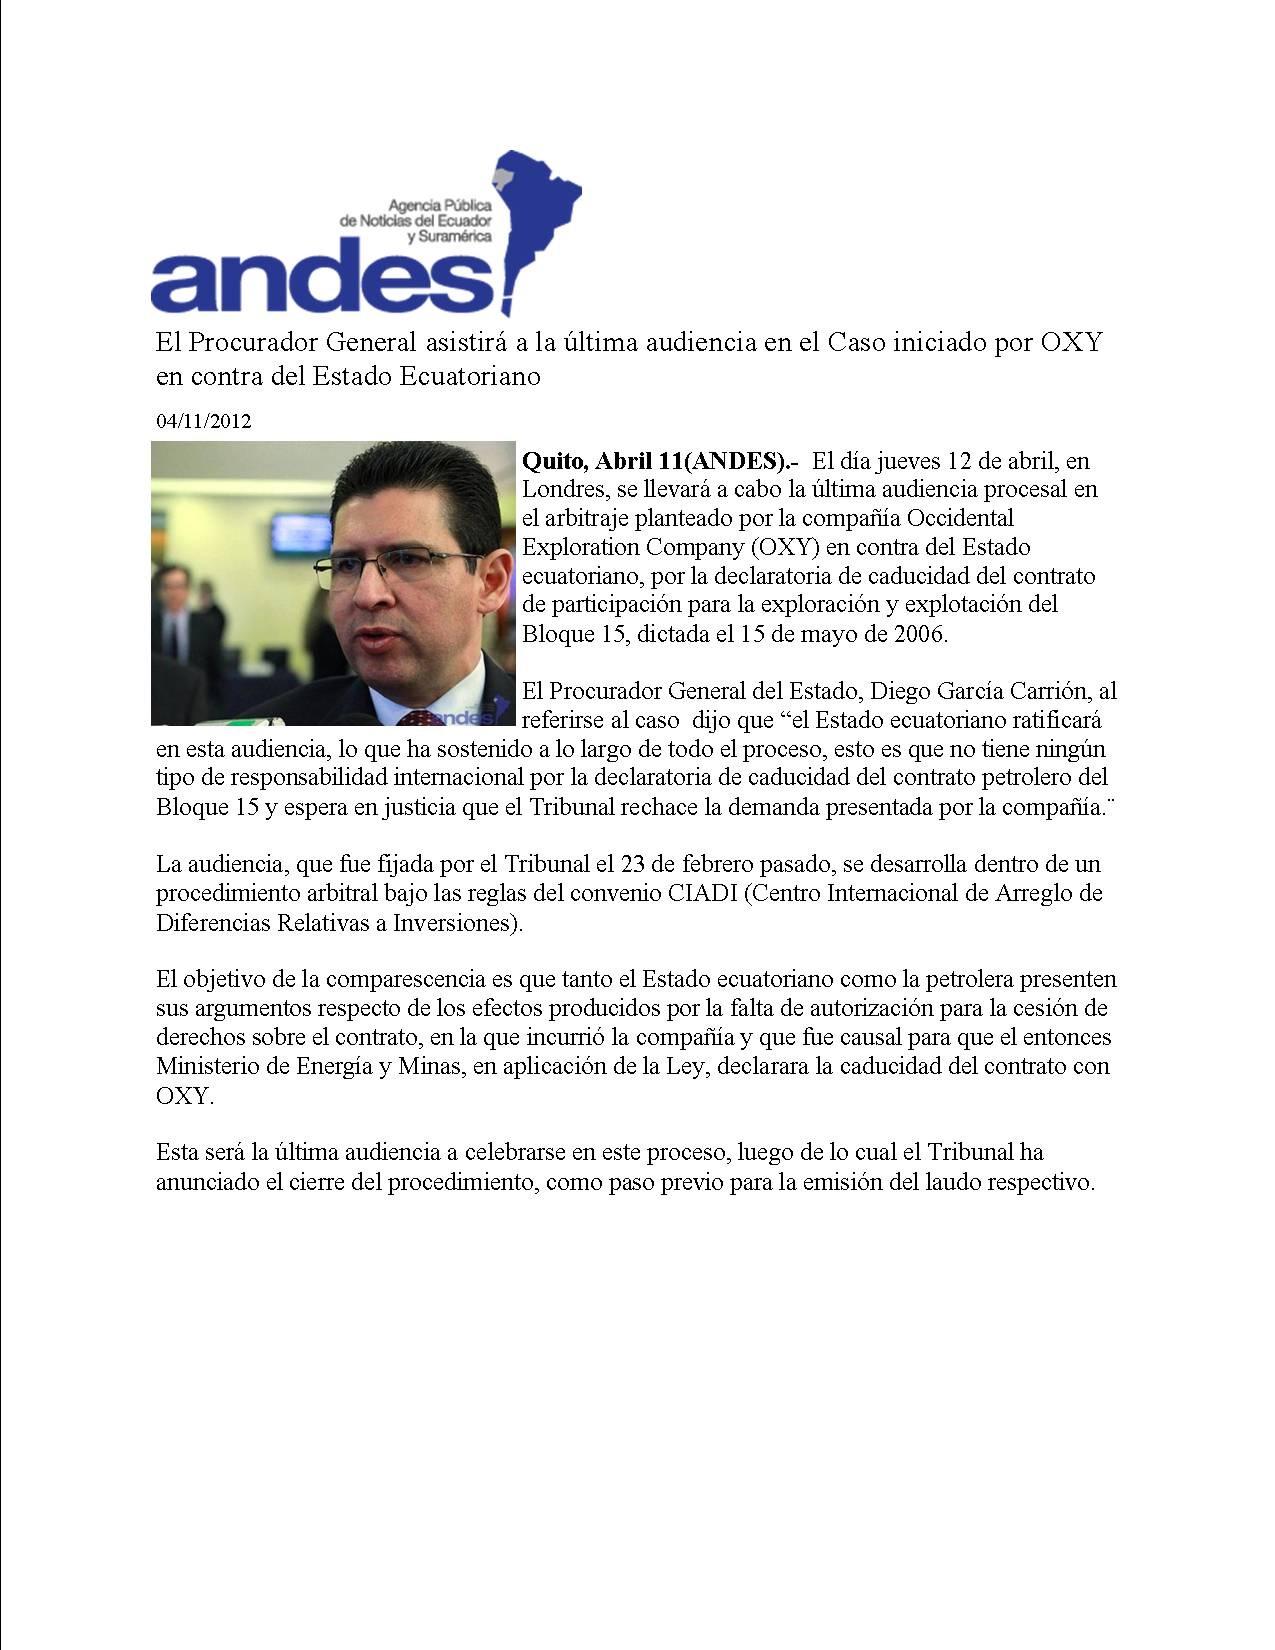 19-2012-04-11 Andes